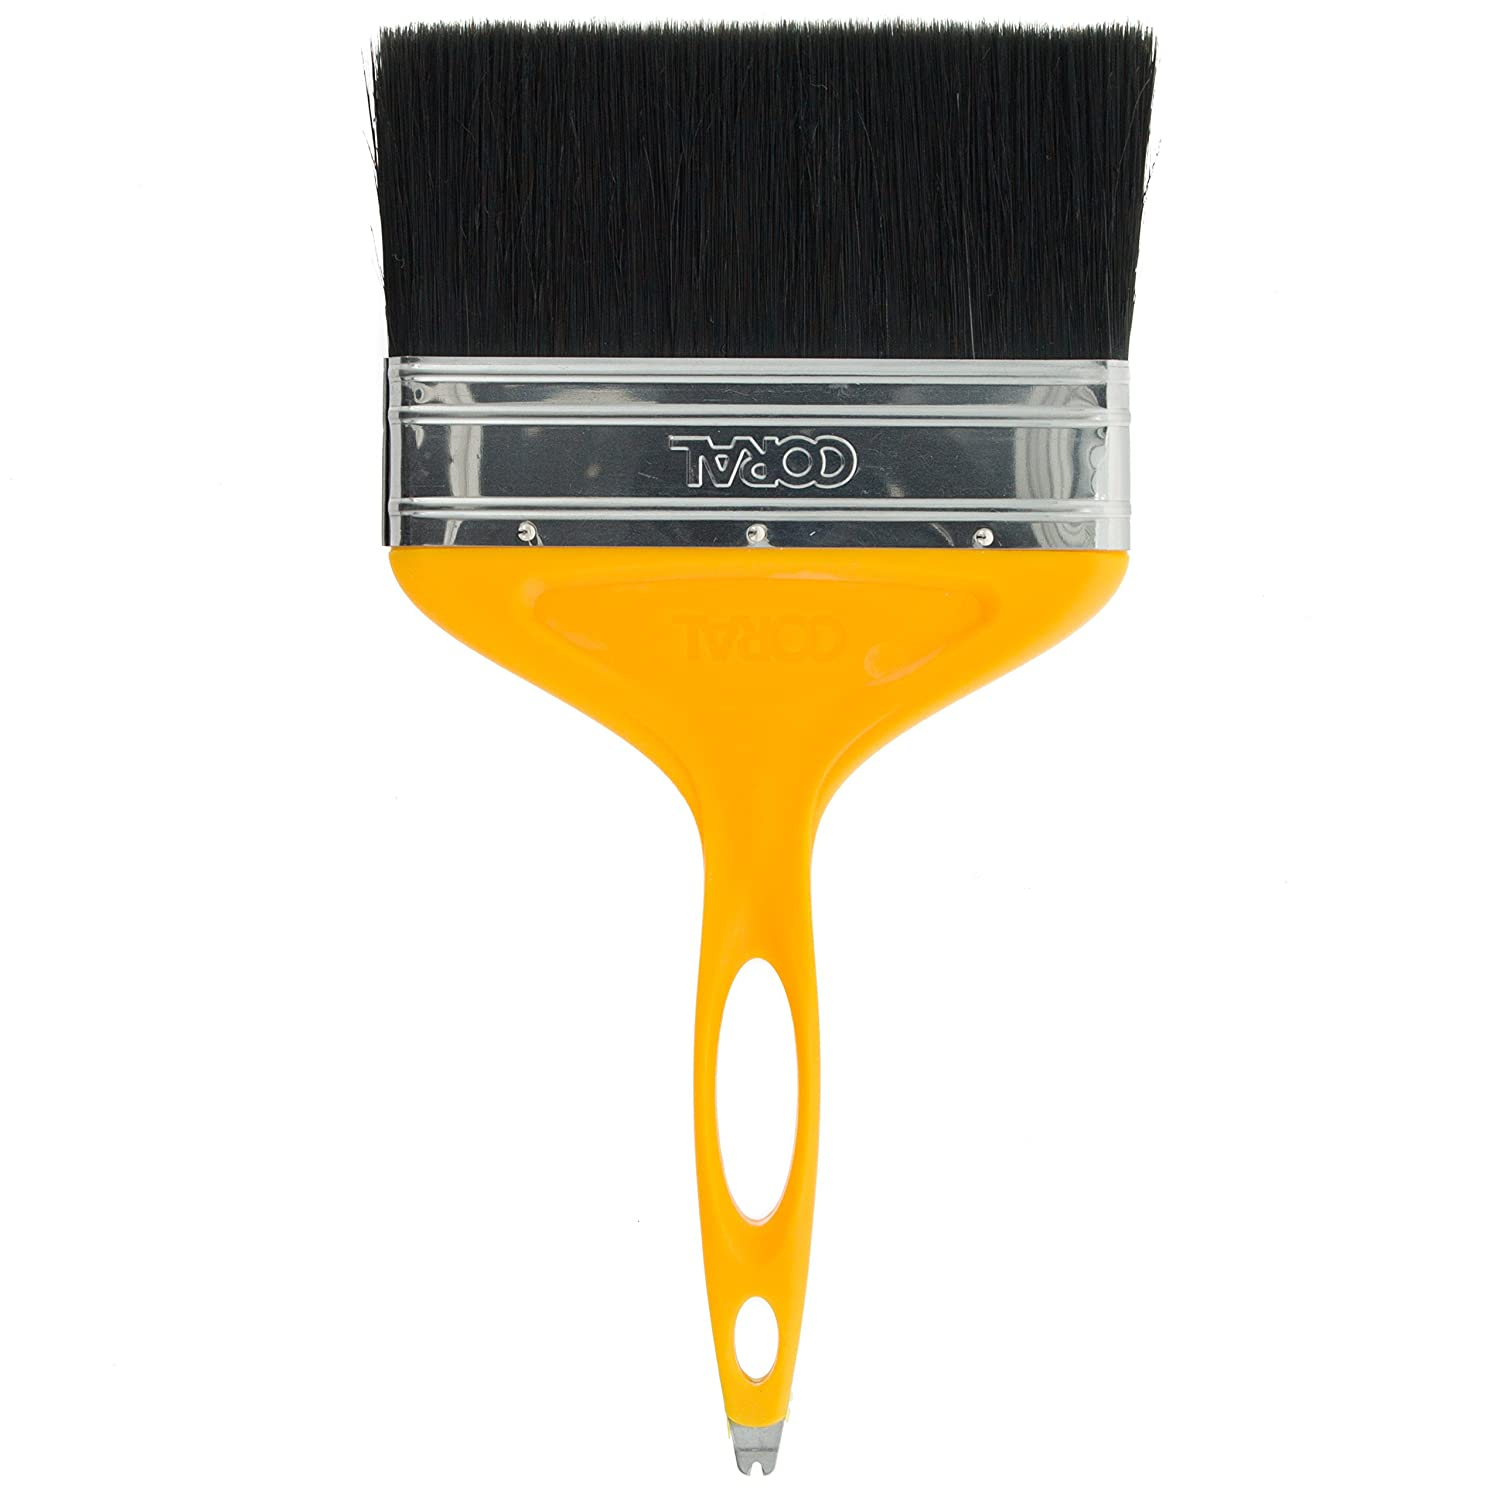 Coral Tools 32451 Hybrid Wall Brush, 5 Inch